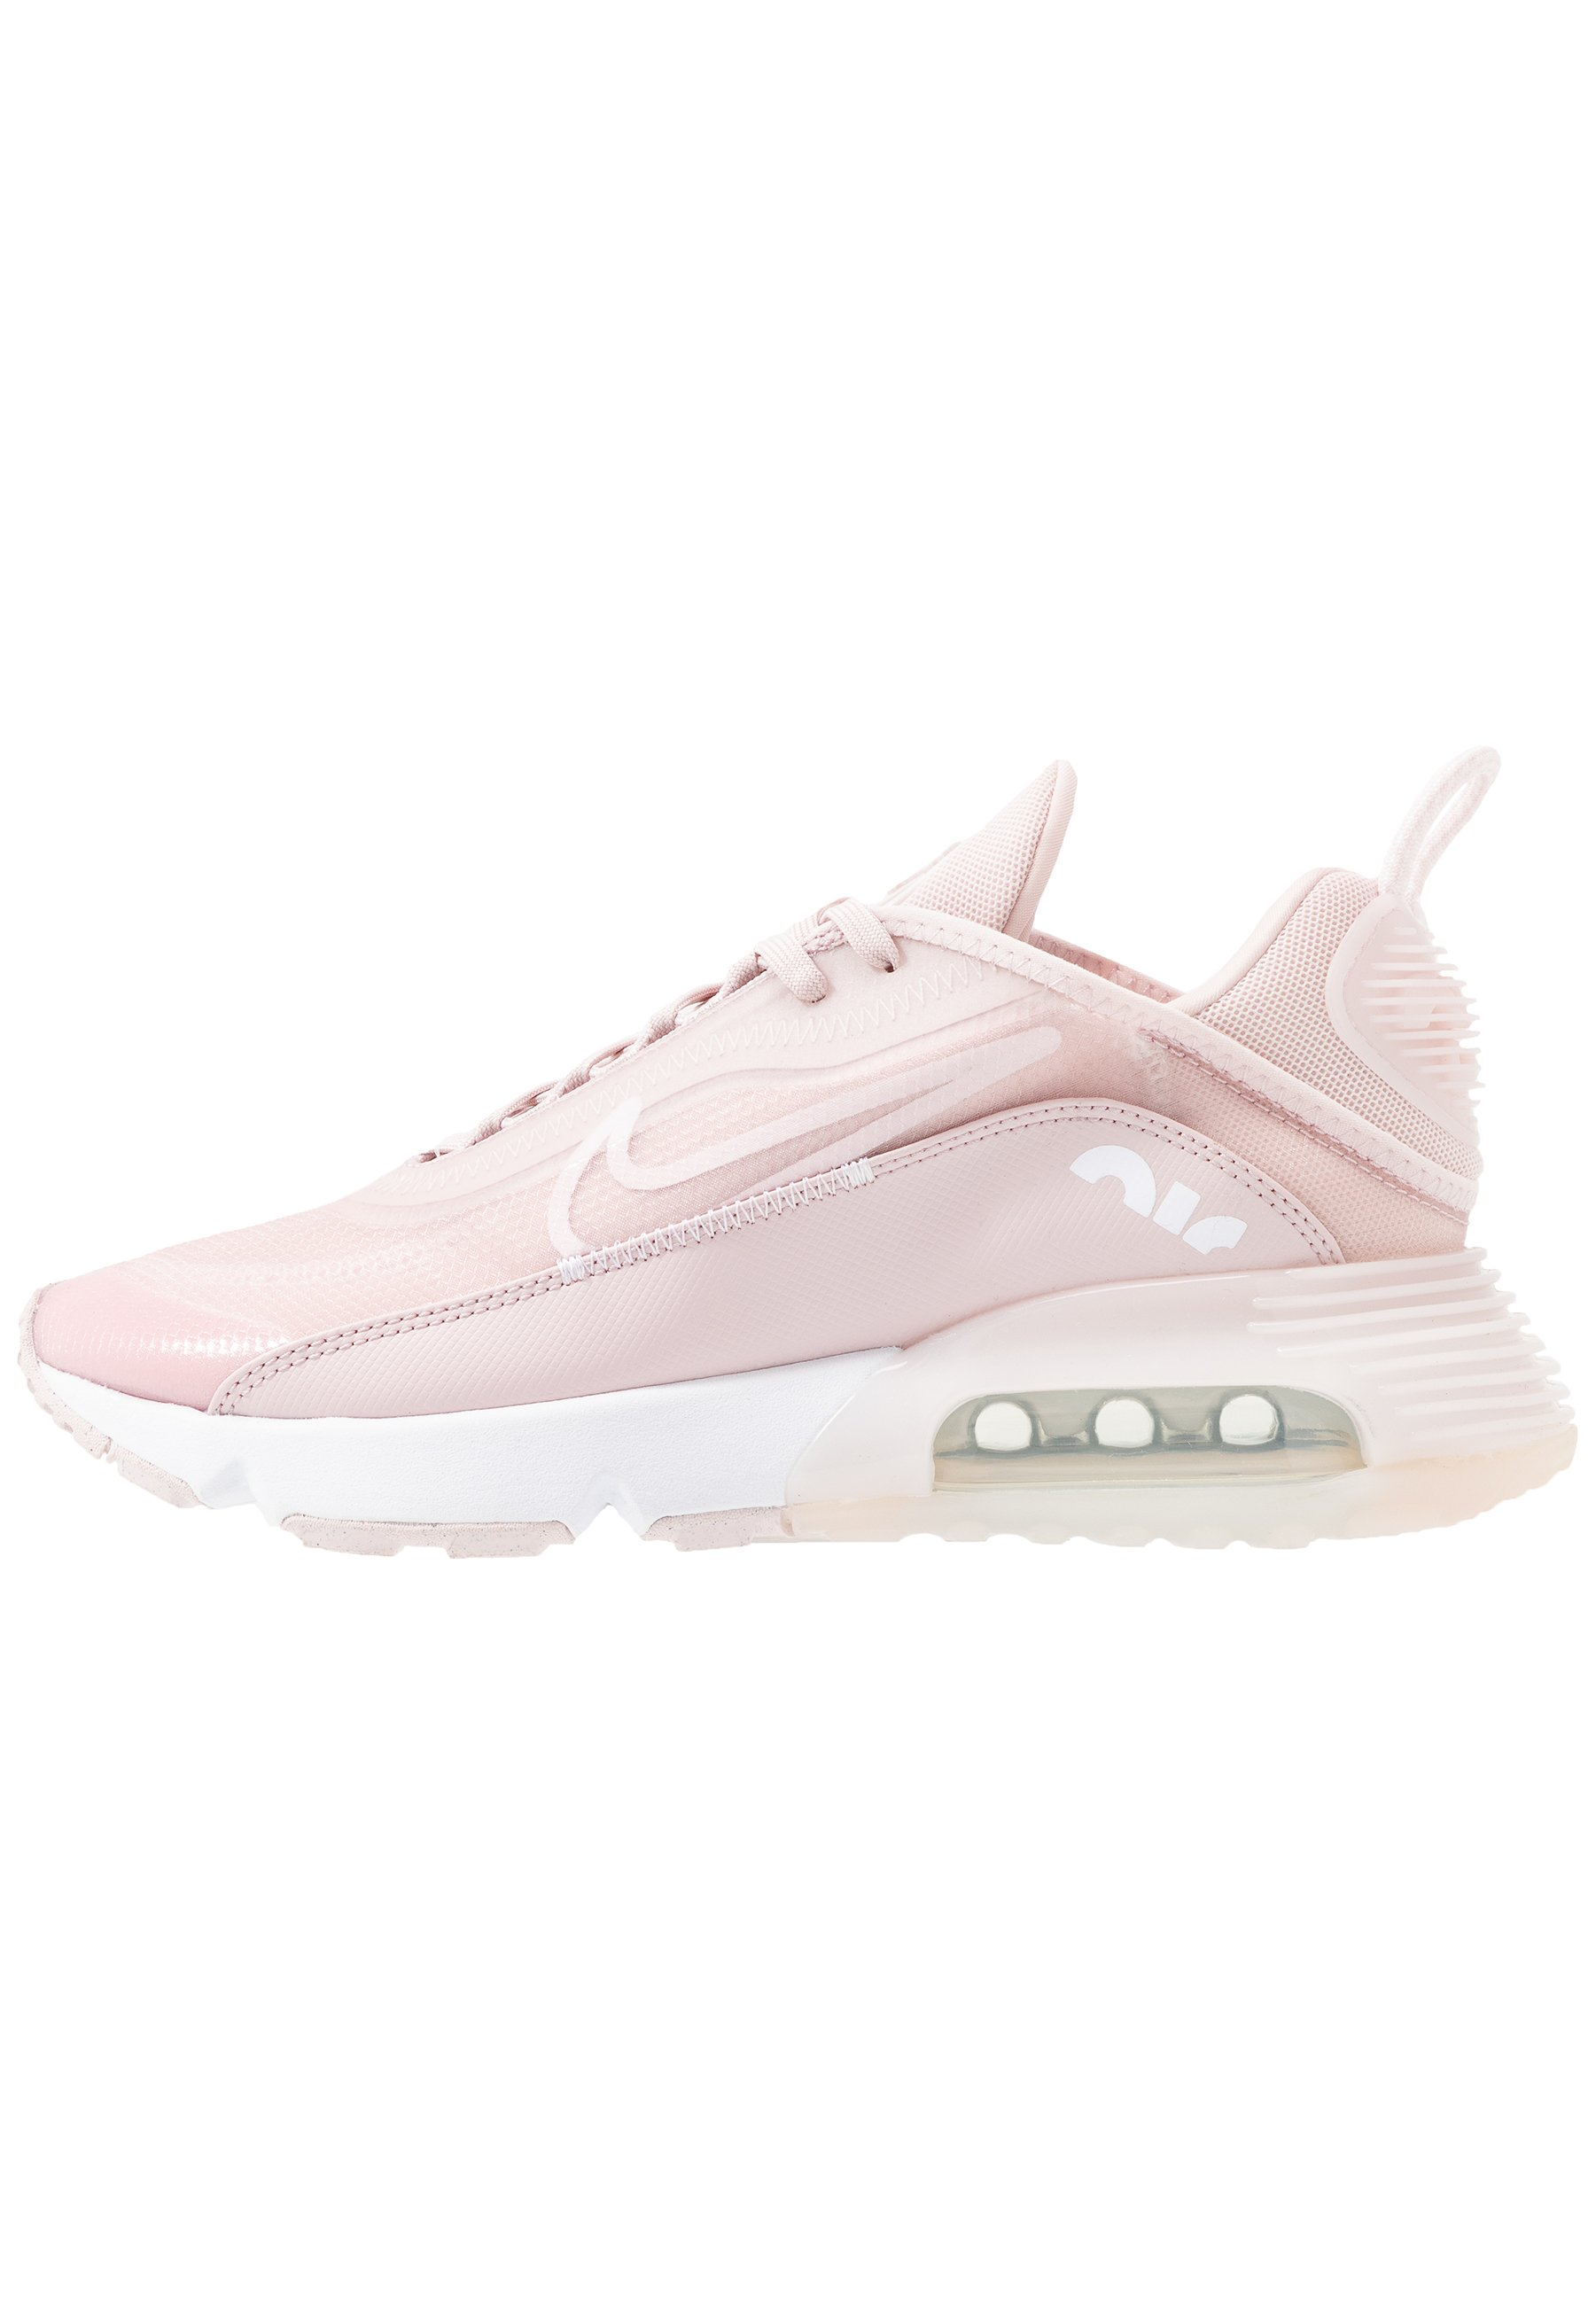 AIR MAX 2090 - Baskets basses - barely rose/white/metallic silver